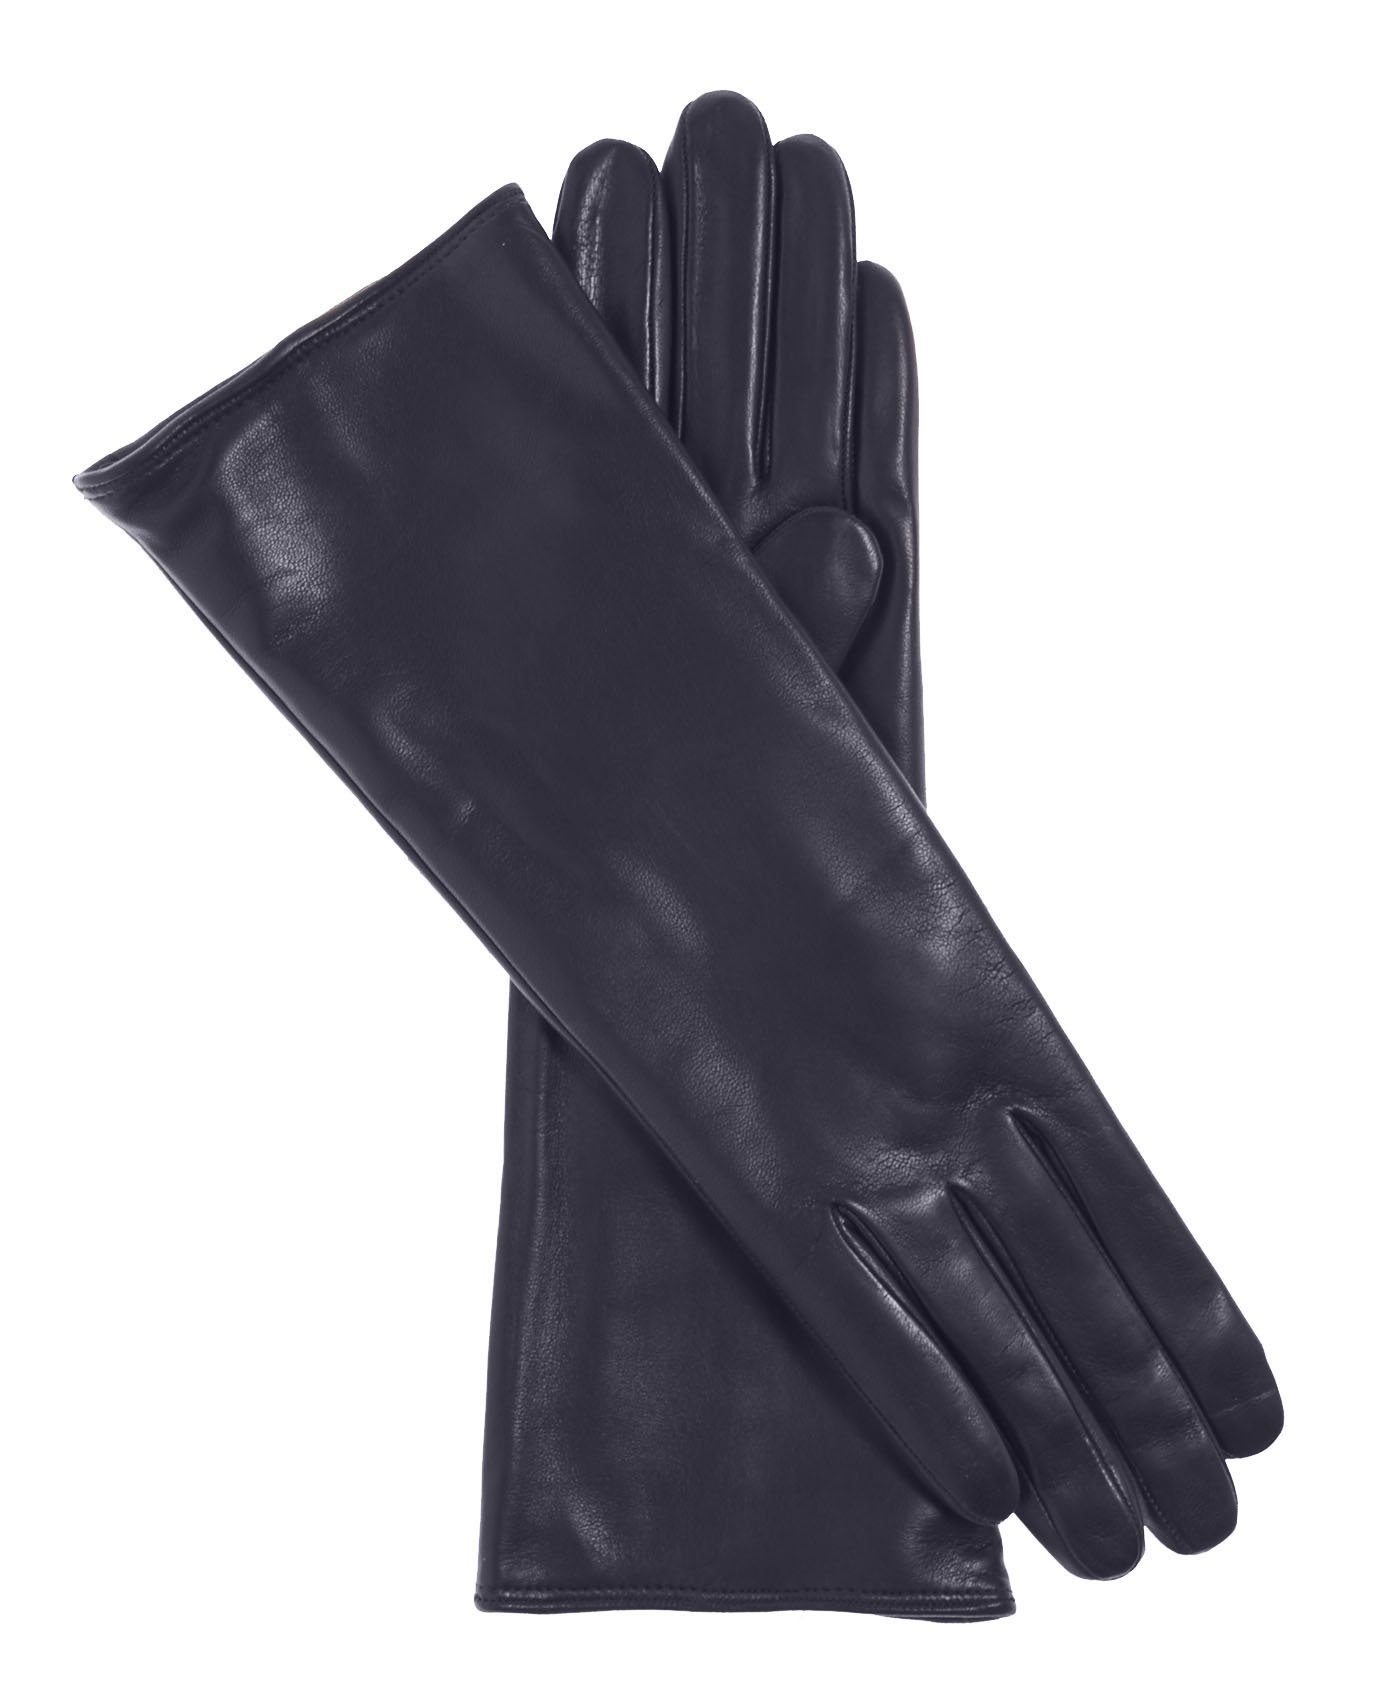 Fratelli Orsini Women's Italian''4 Button Length'' Cashmere Lined Leather Gloves Size 7 Color Navy by Fratelli Orsini